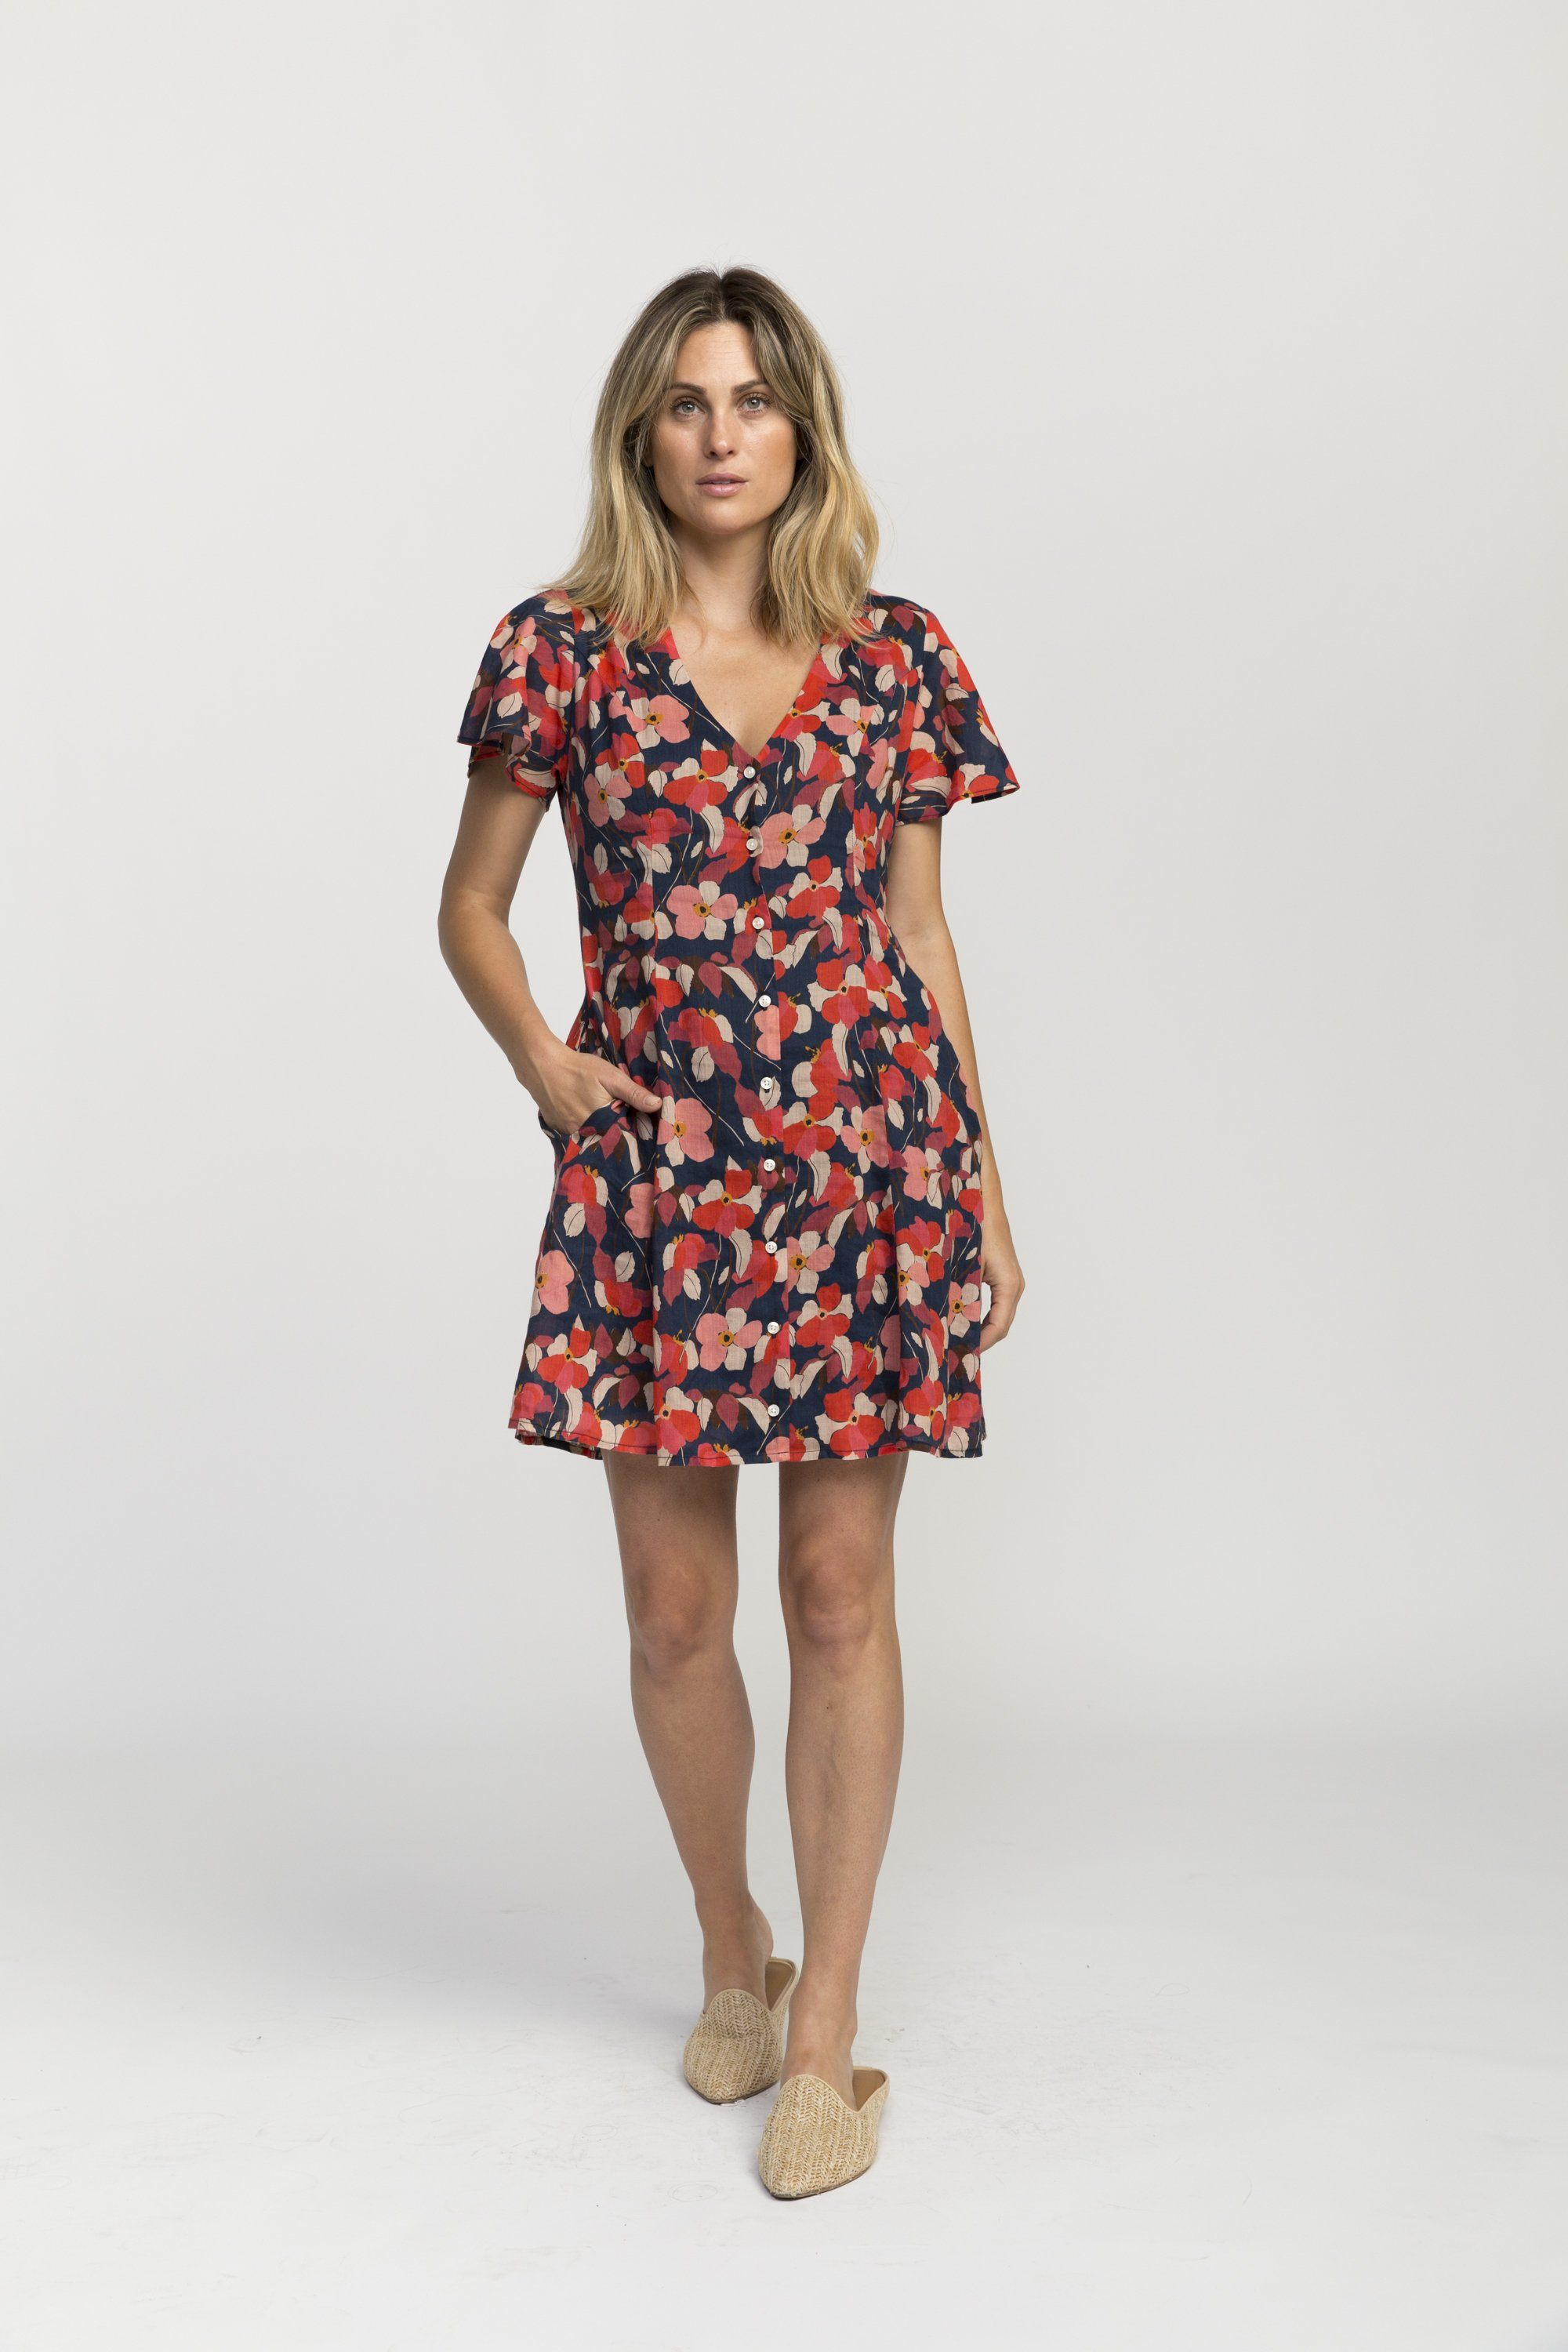 Sistine dress NAVY FLORAL by Trovata - 2